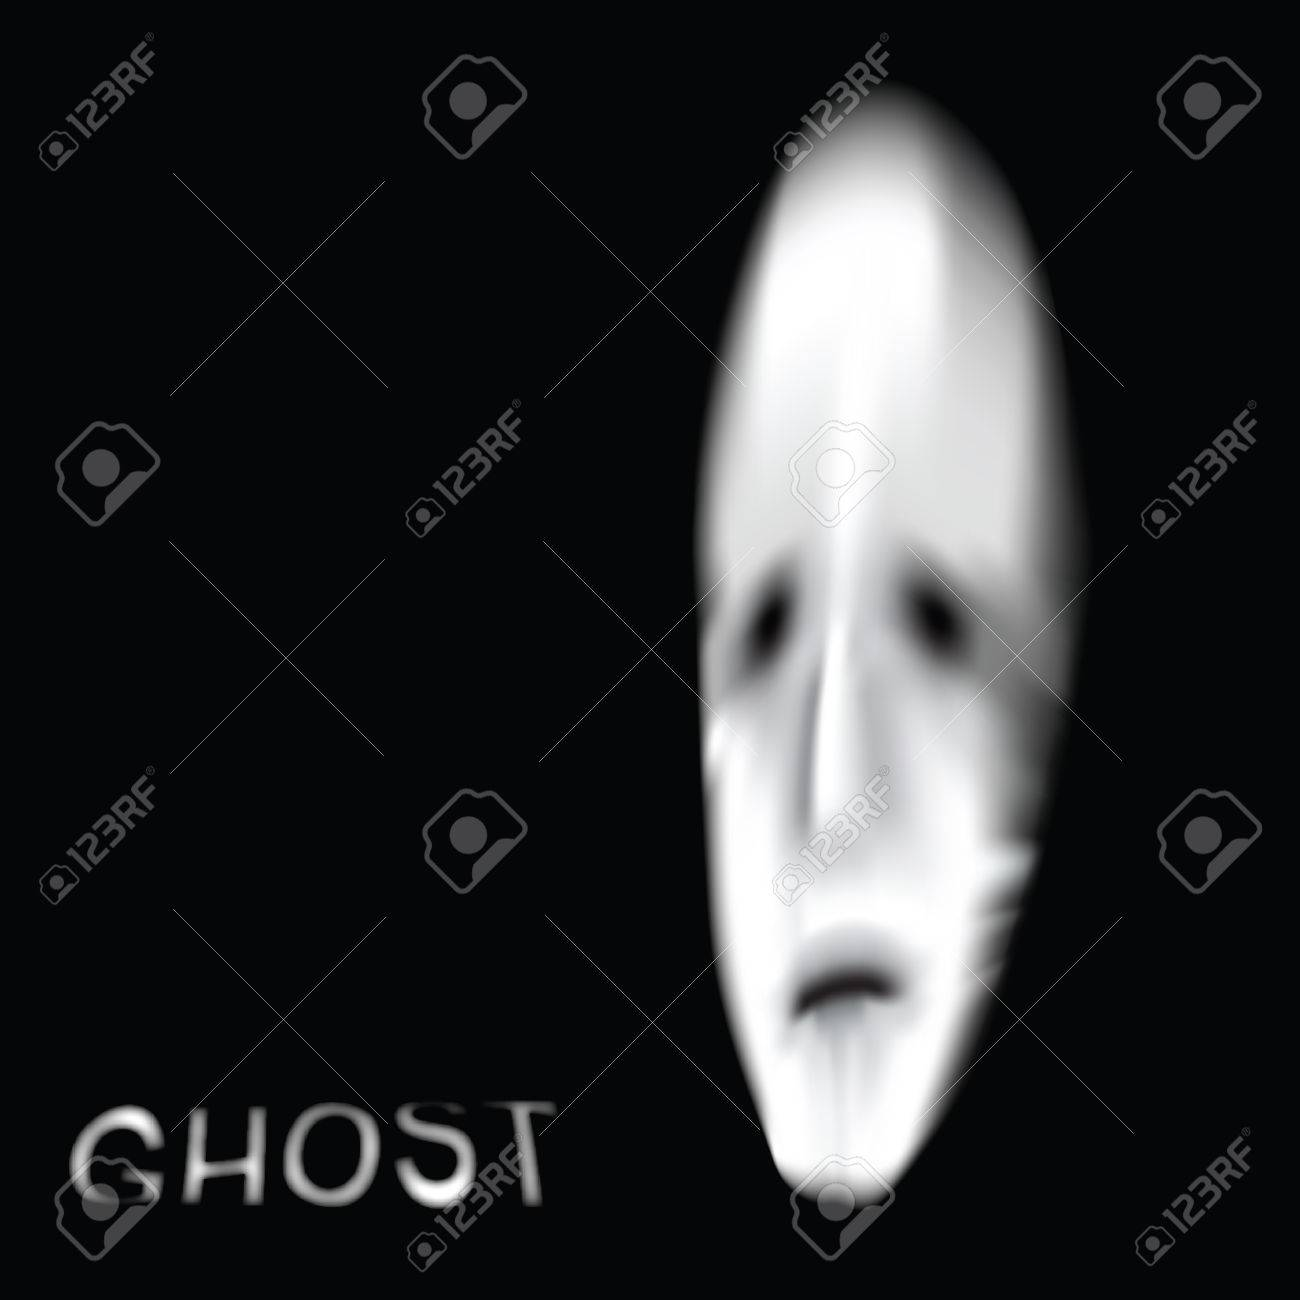 Ghost or alien face illustration Stock Vector - 23866992